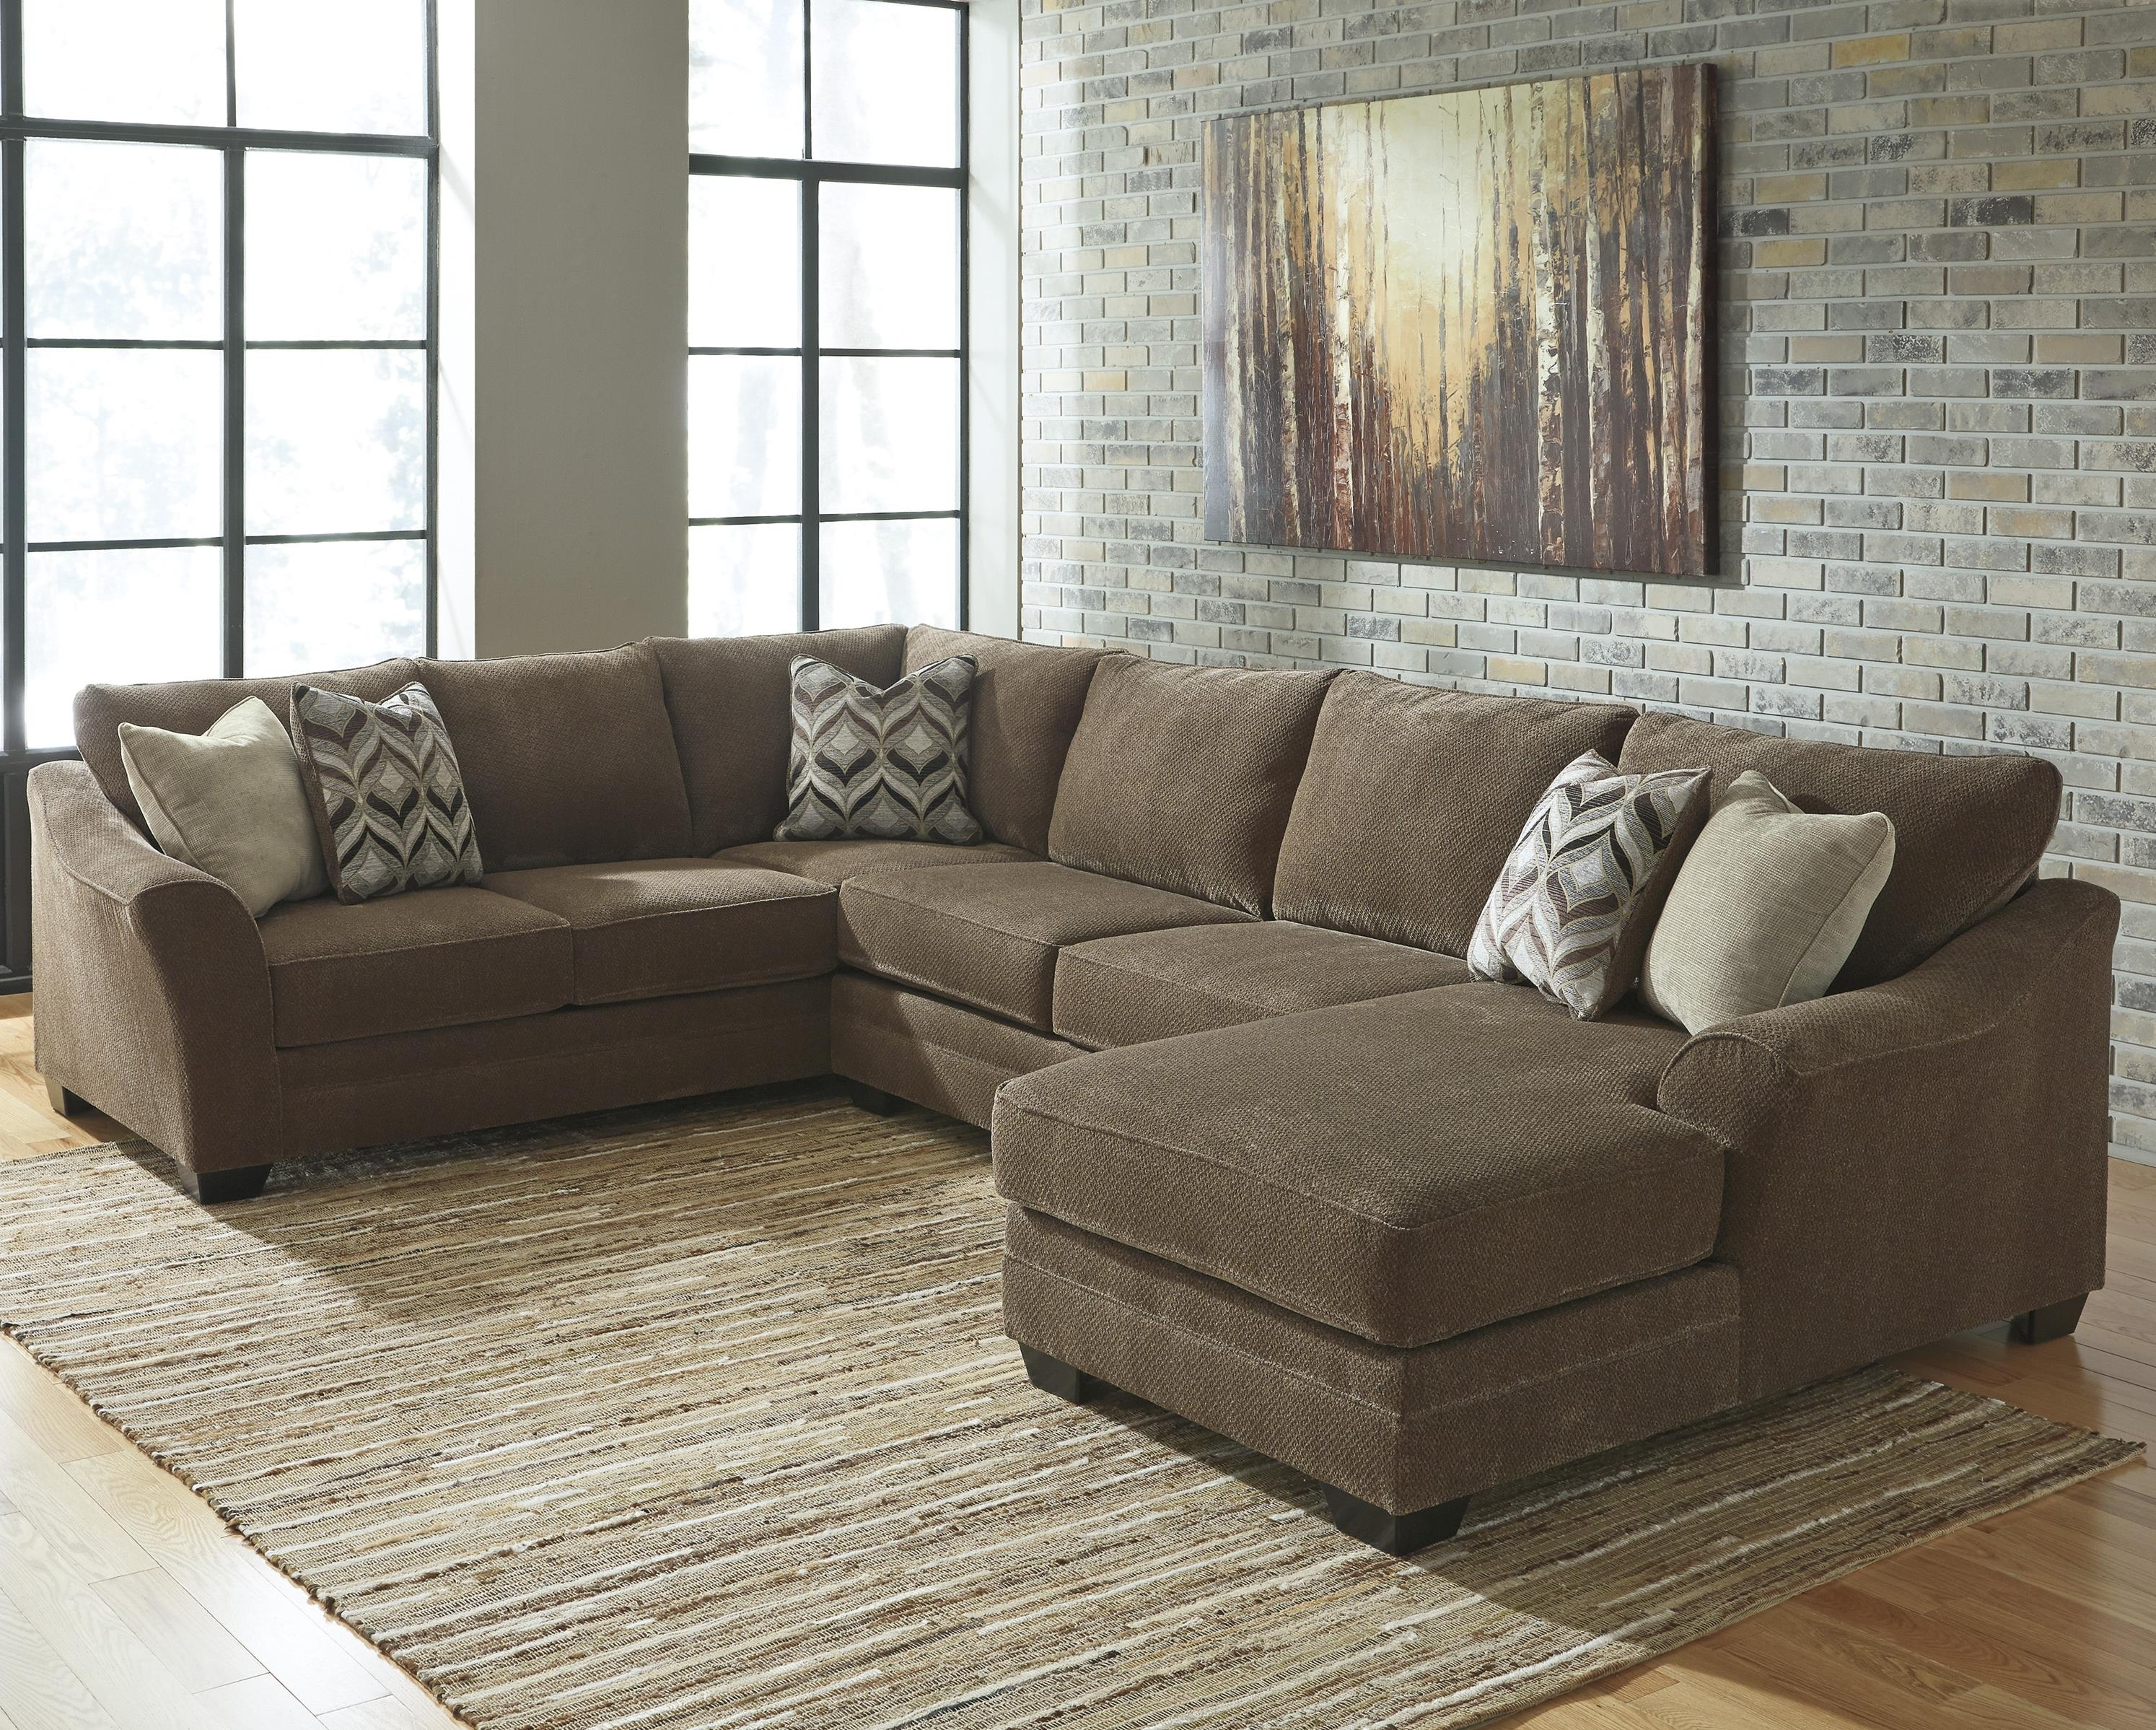 3 Piece Sectional - Locsbyhelenelorasa with regard to Delano Smoke 3 Piece Sectionals (Image 3 of 30)